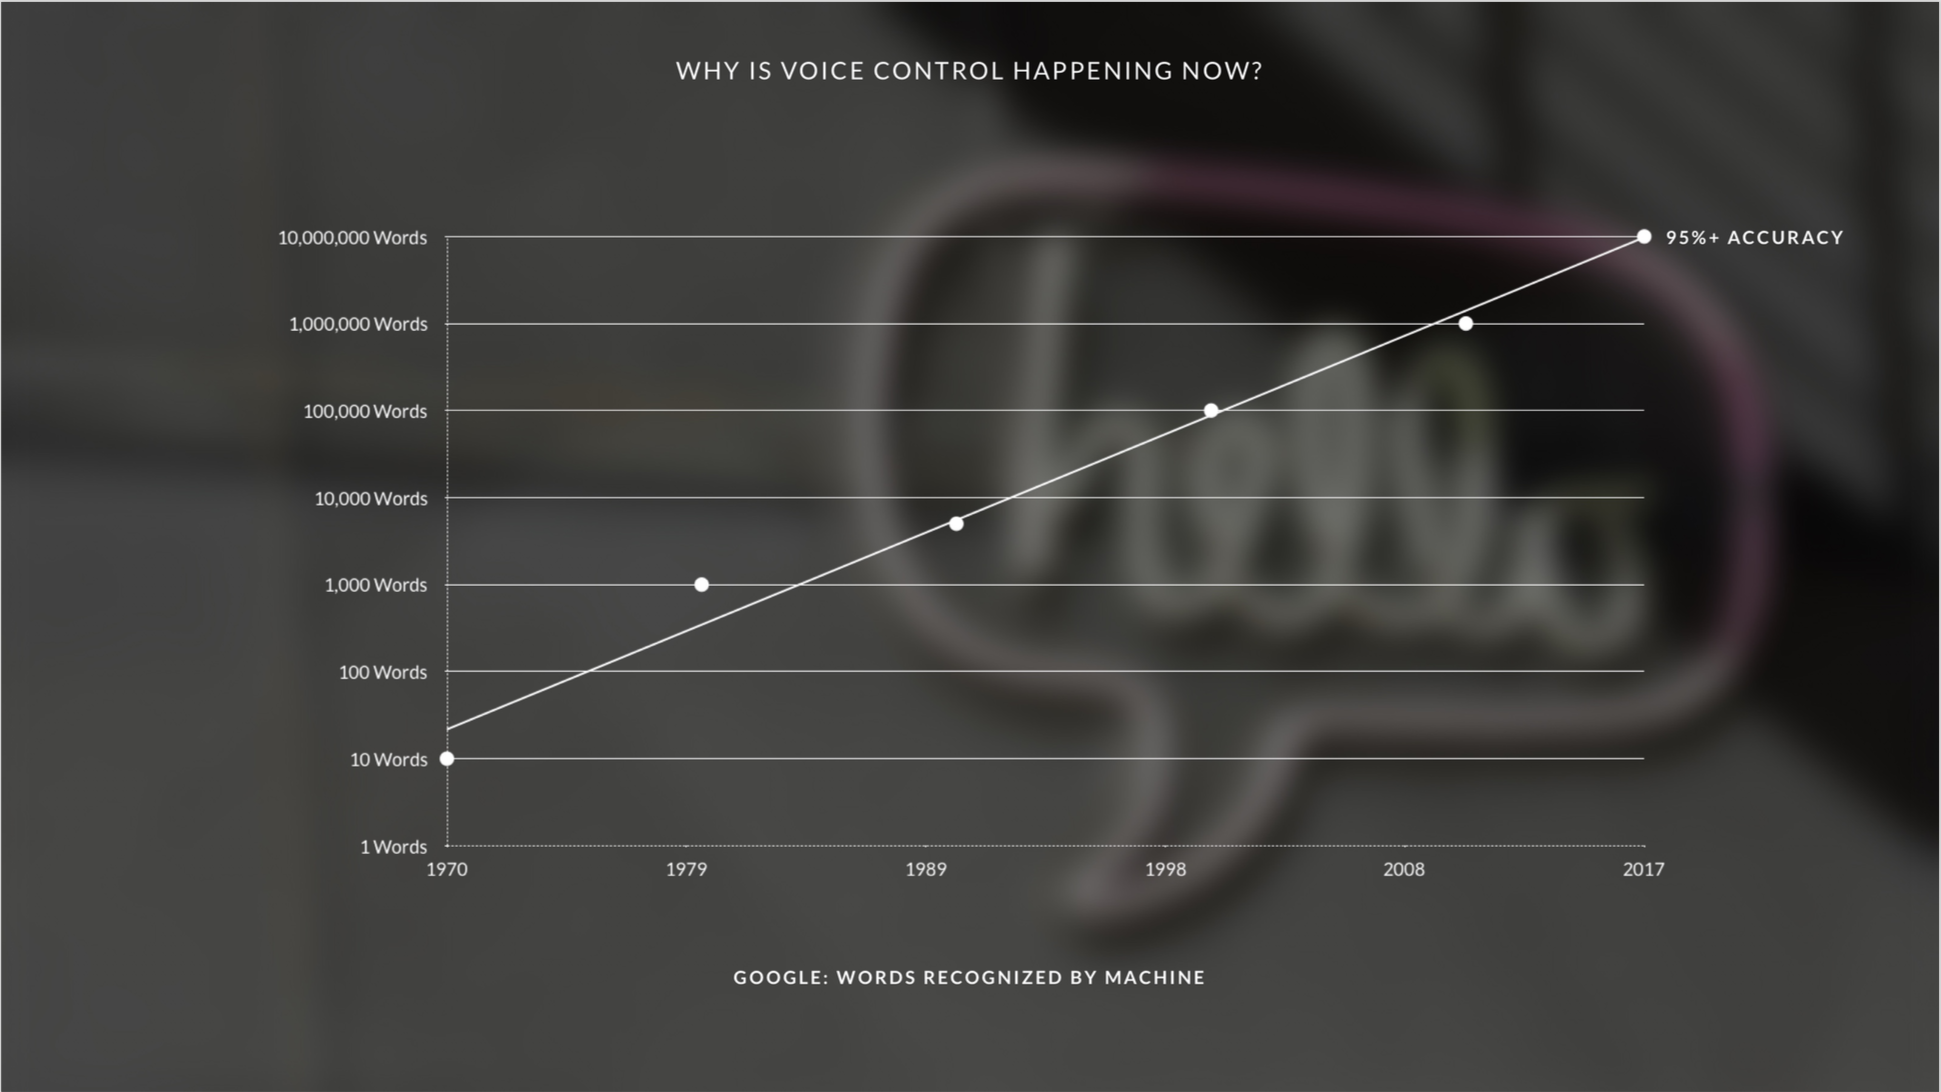 Voice Adoption is About More Than the Technology - Good Audience